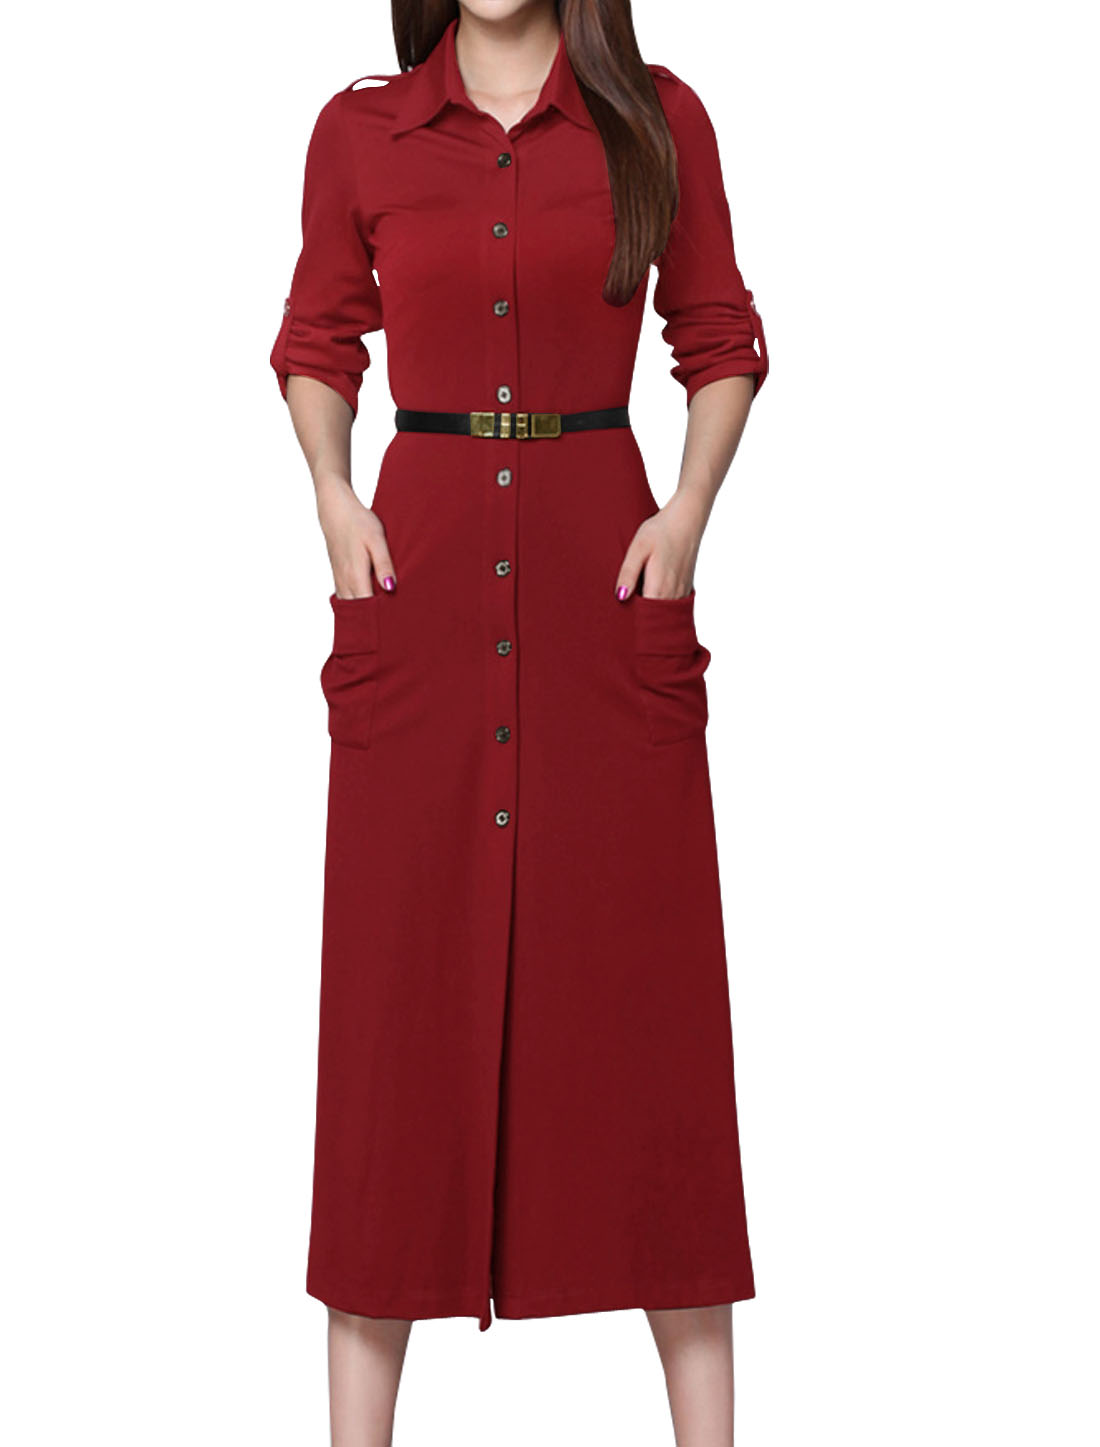 Women Rolled Up Sleeves Single Breasted Two Pockets Shirt Dress w Belt Red M